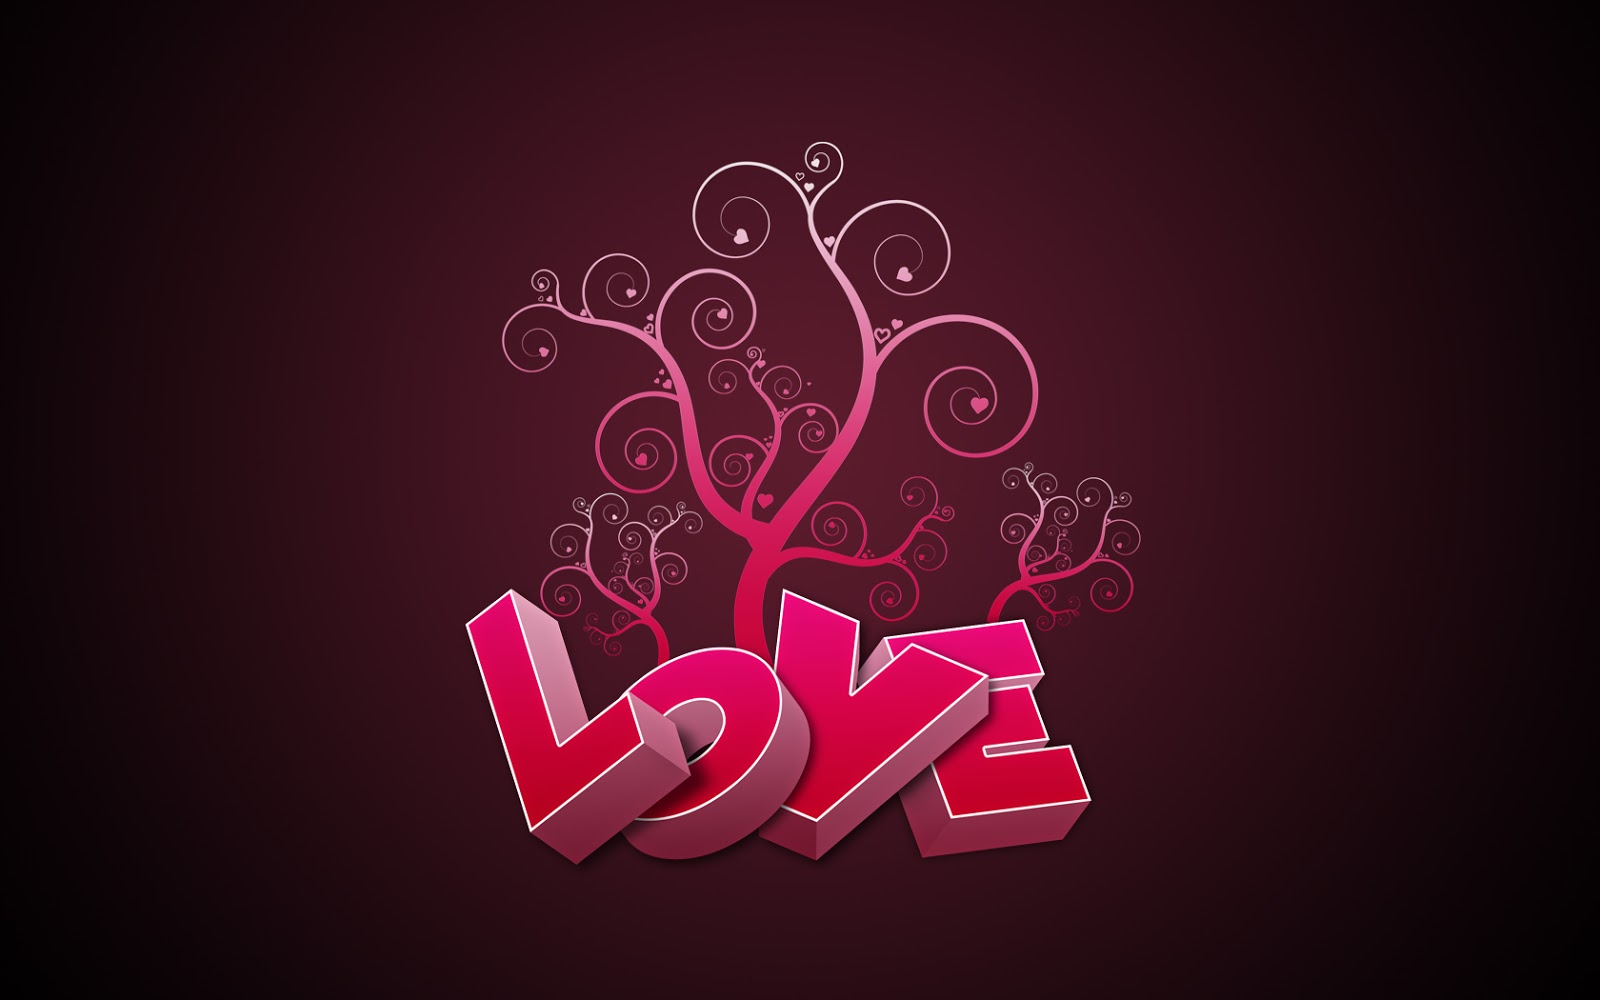 Wallpaper Love Story Hd : Sms with Wallpapers: 12/28/13